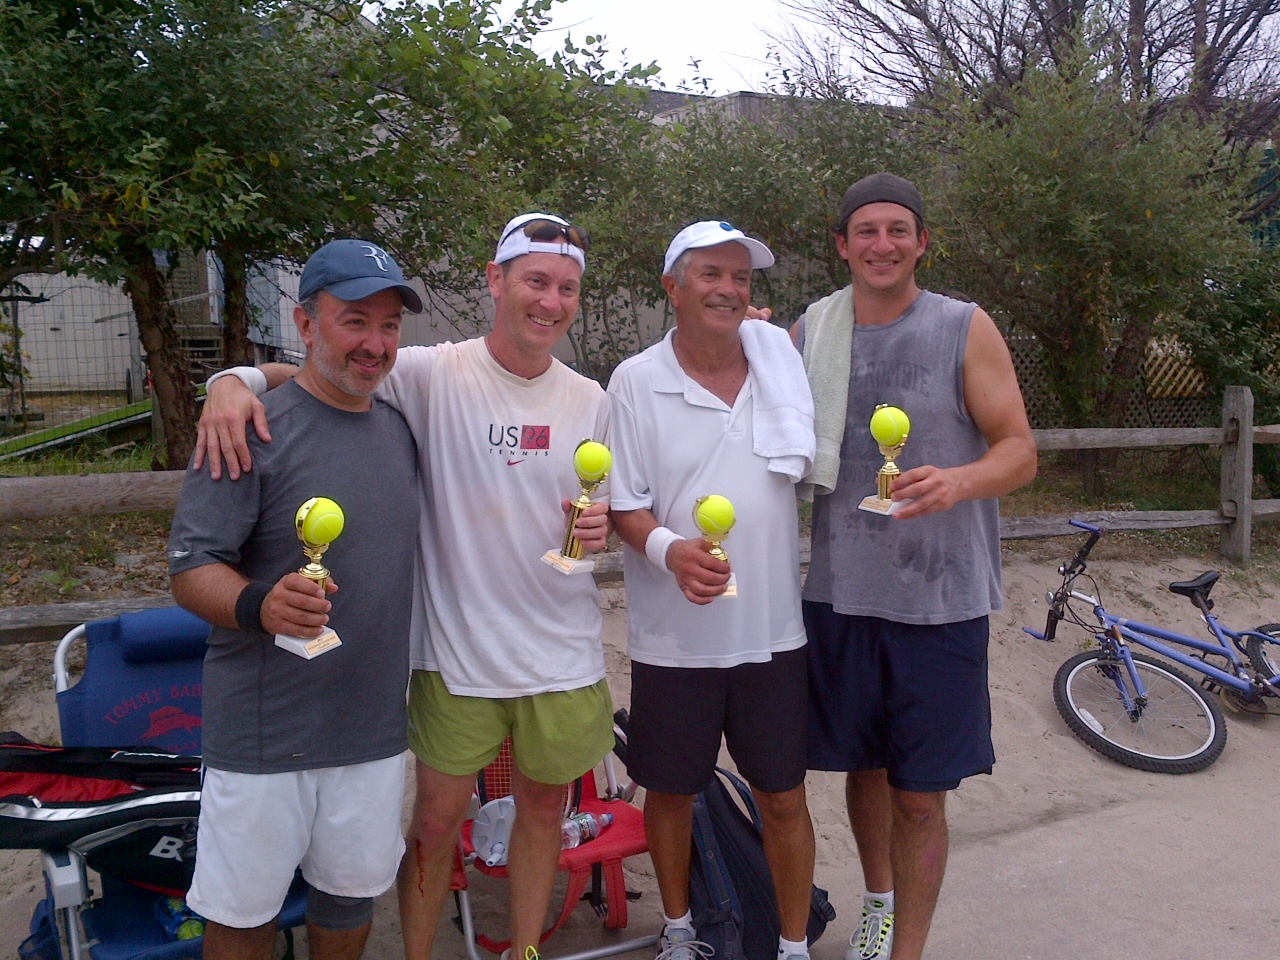 From Left to Right:  The 2013 Winners:  - Anthony Cutrone & Peter Taub.   2013 - Runners up: Marty Mark & Jason Perna